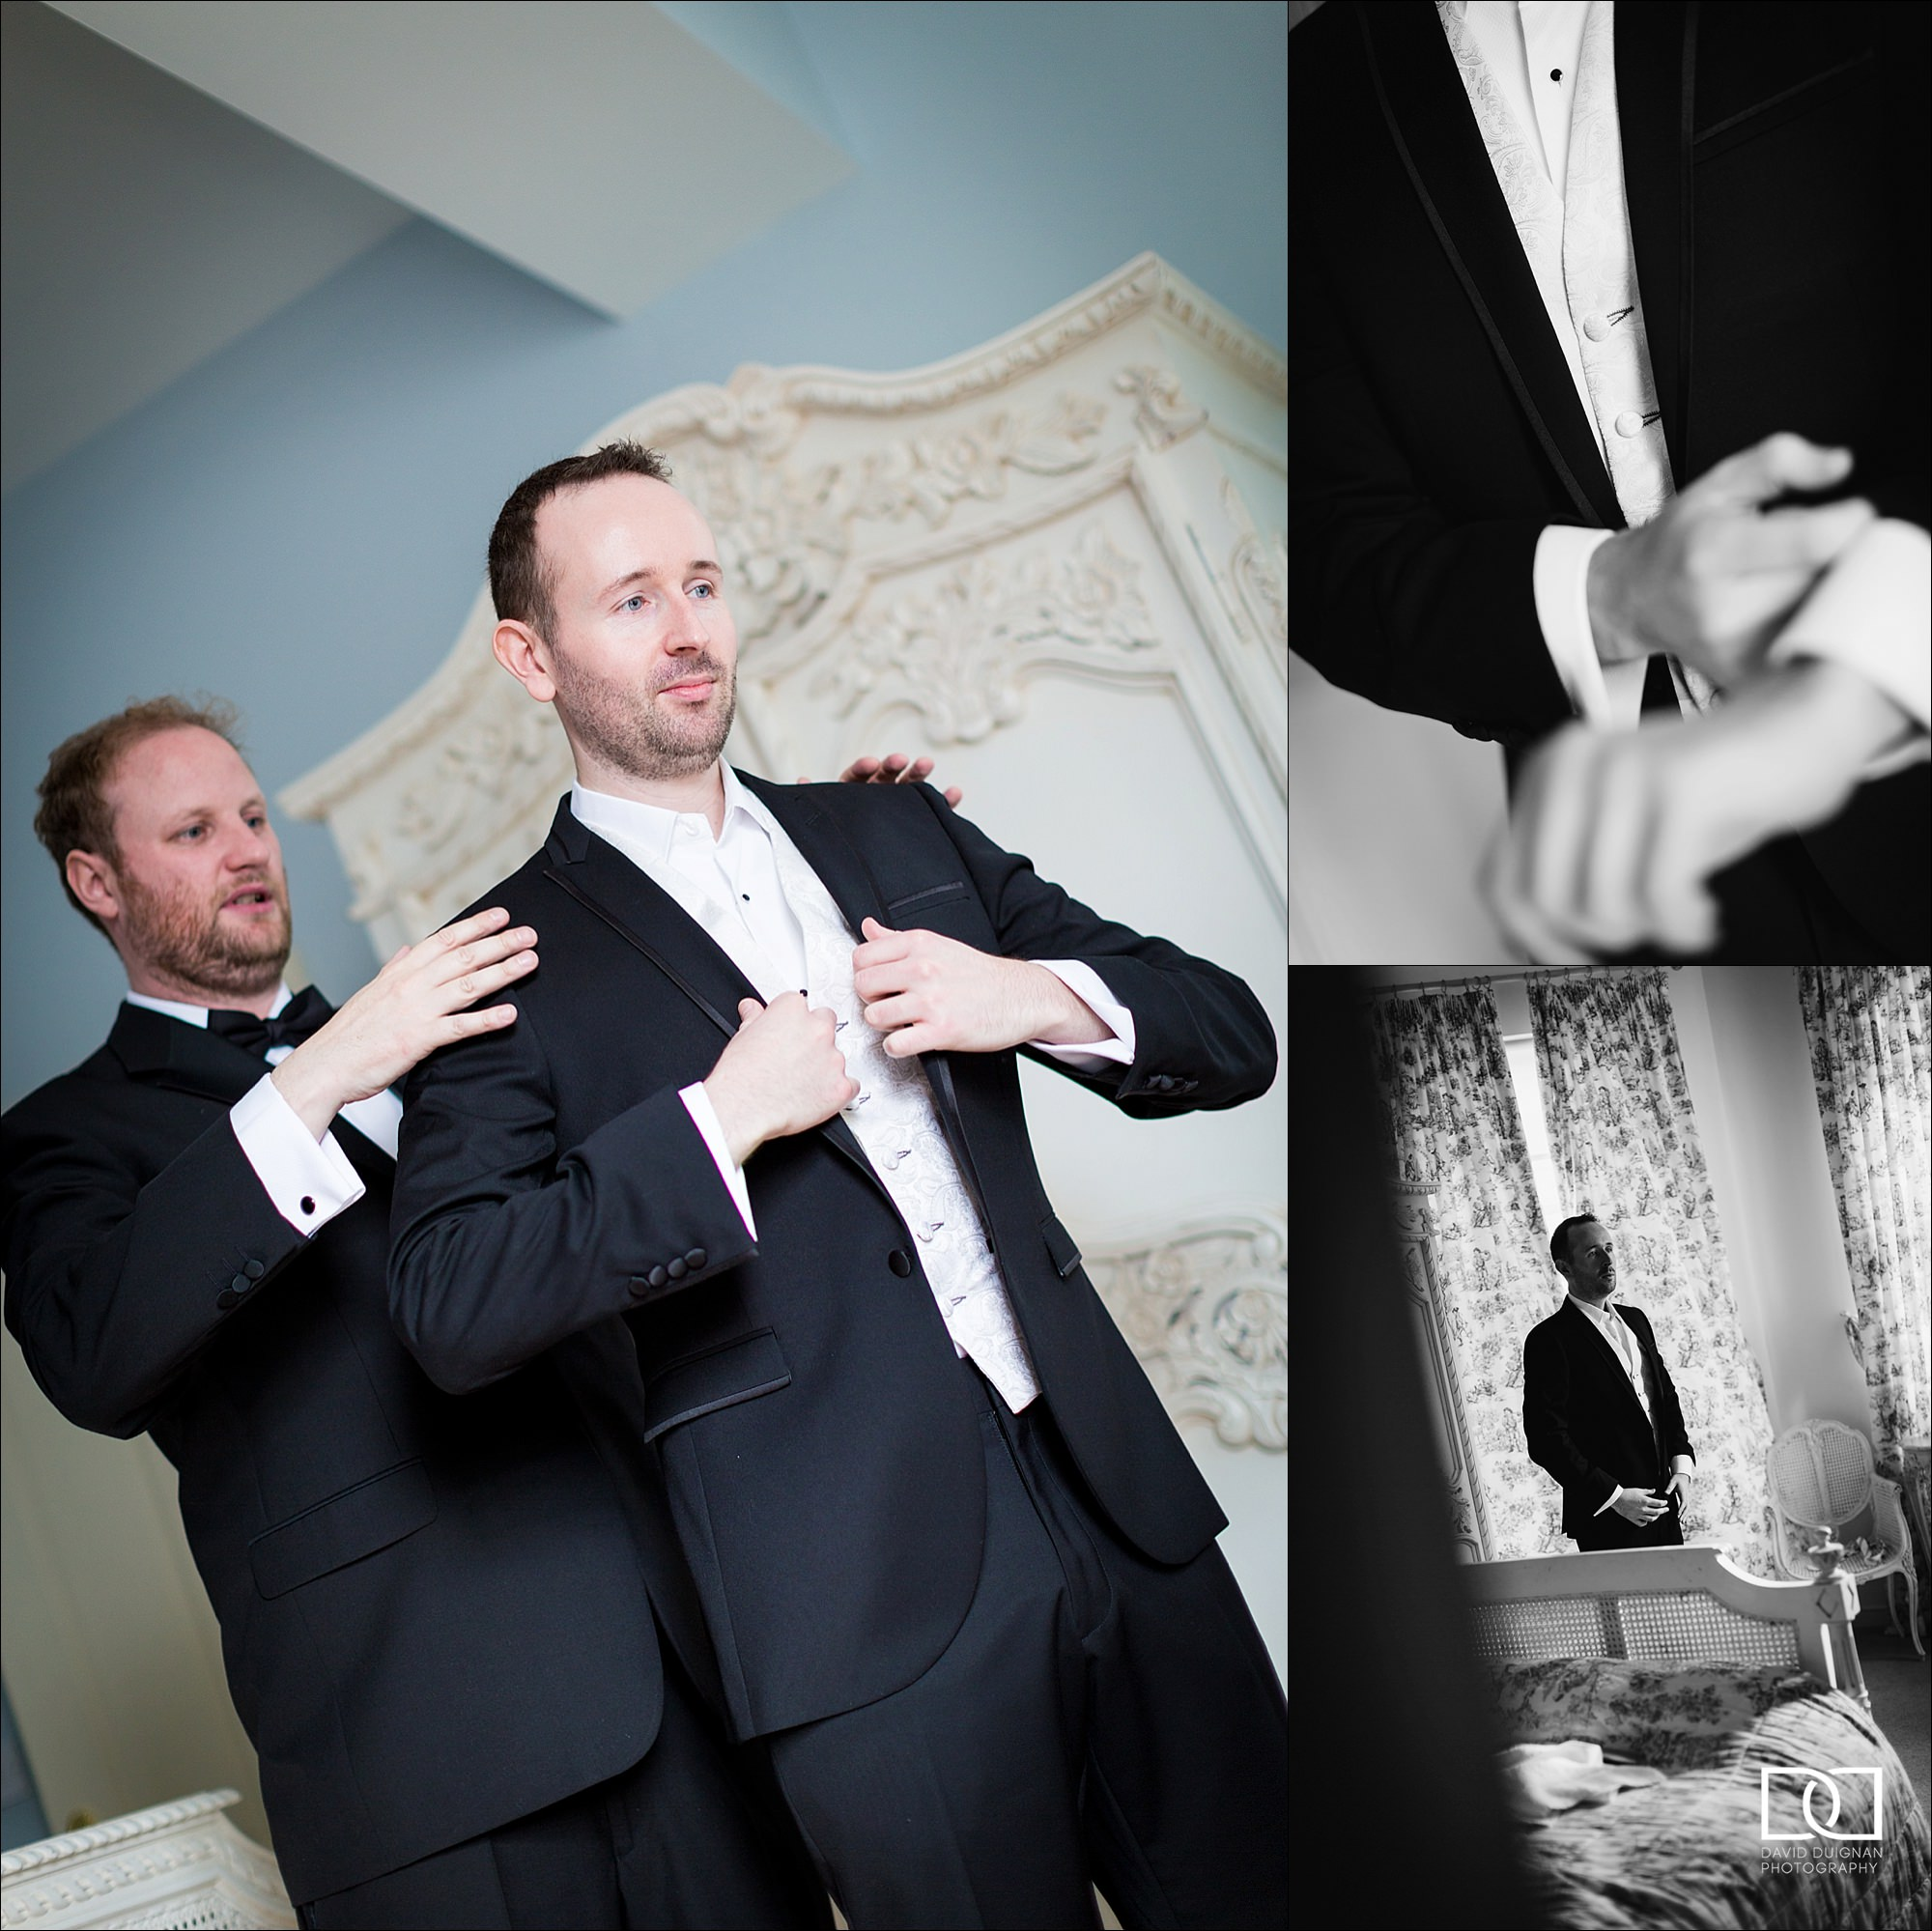 dublin wedding photographer david duignan photography castle leslie weddings Ireland 0007